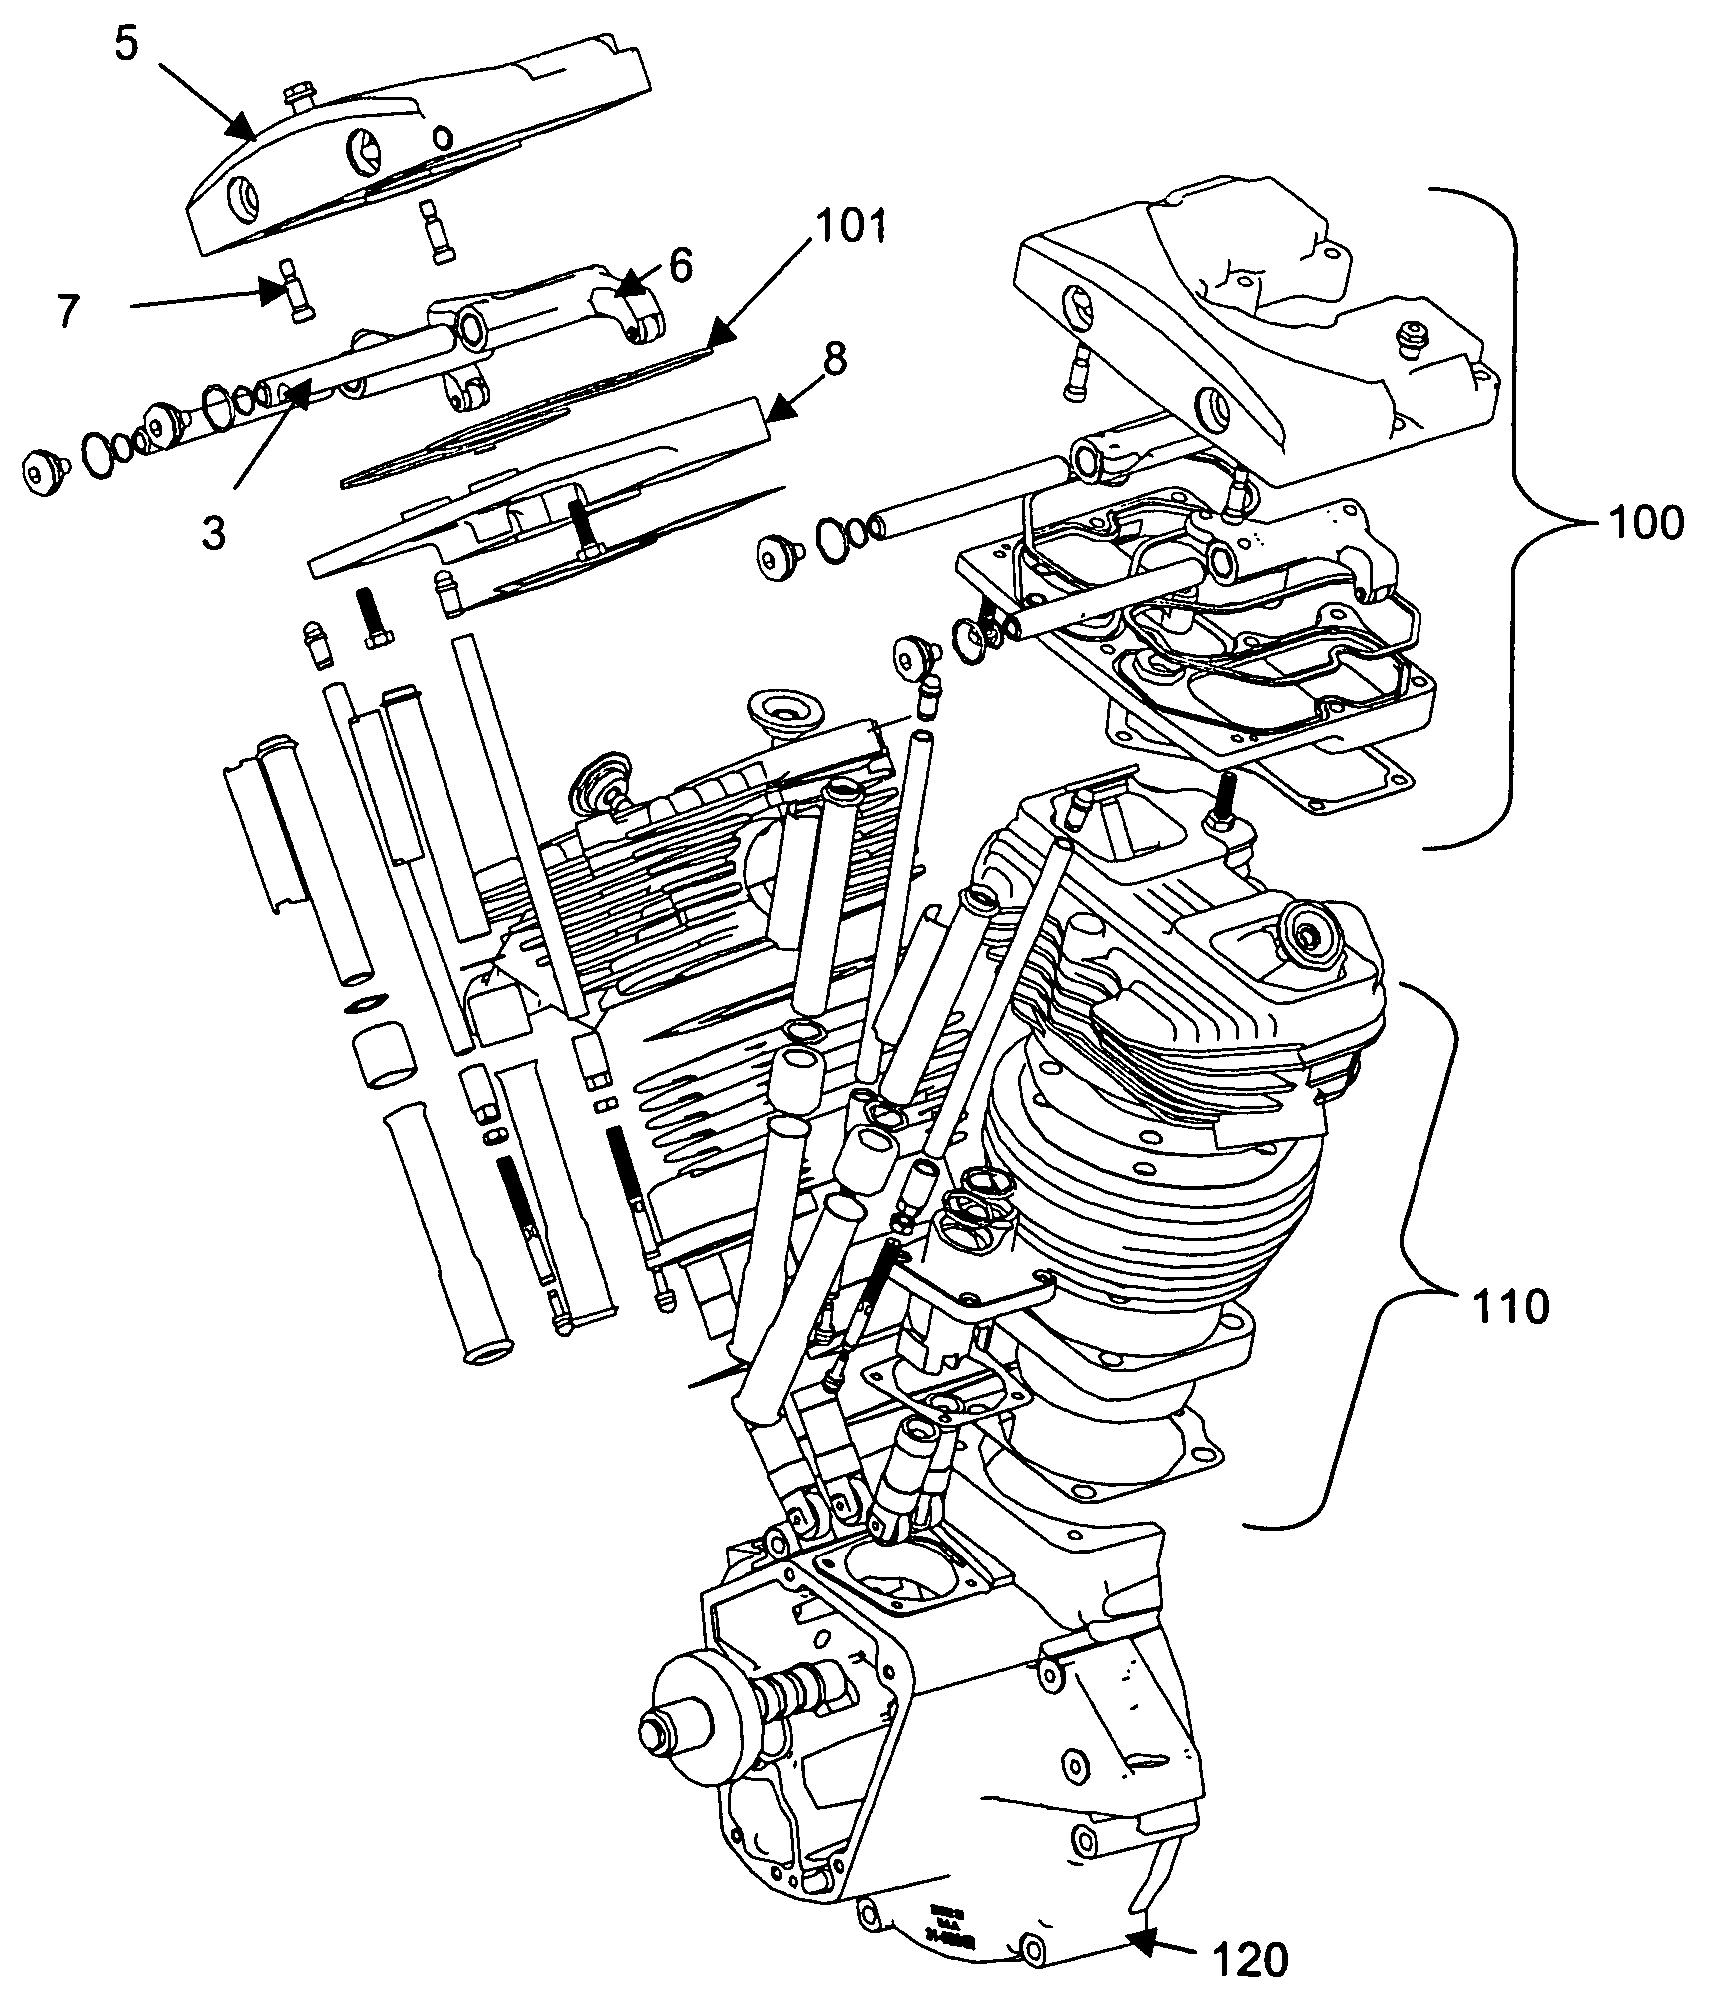 Shovelhead Engine Diagram Wiring Harness Wiring Diagram Wiring